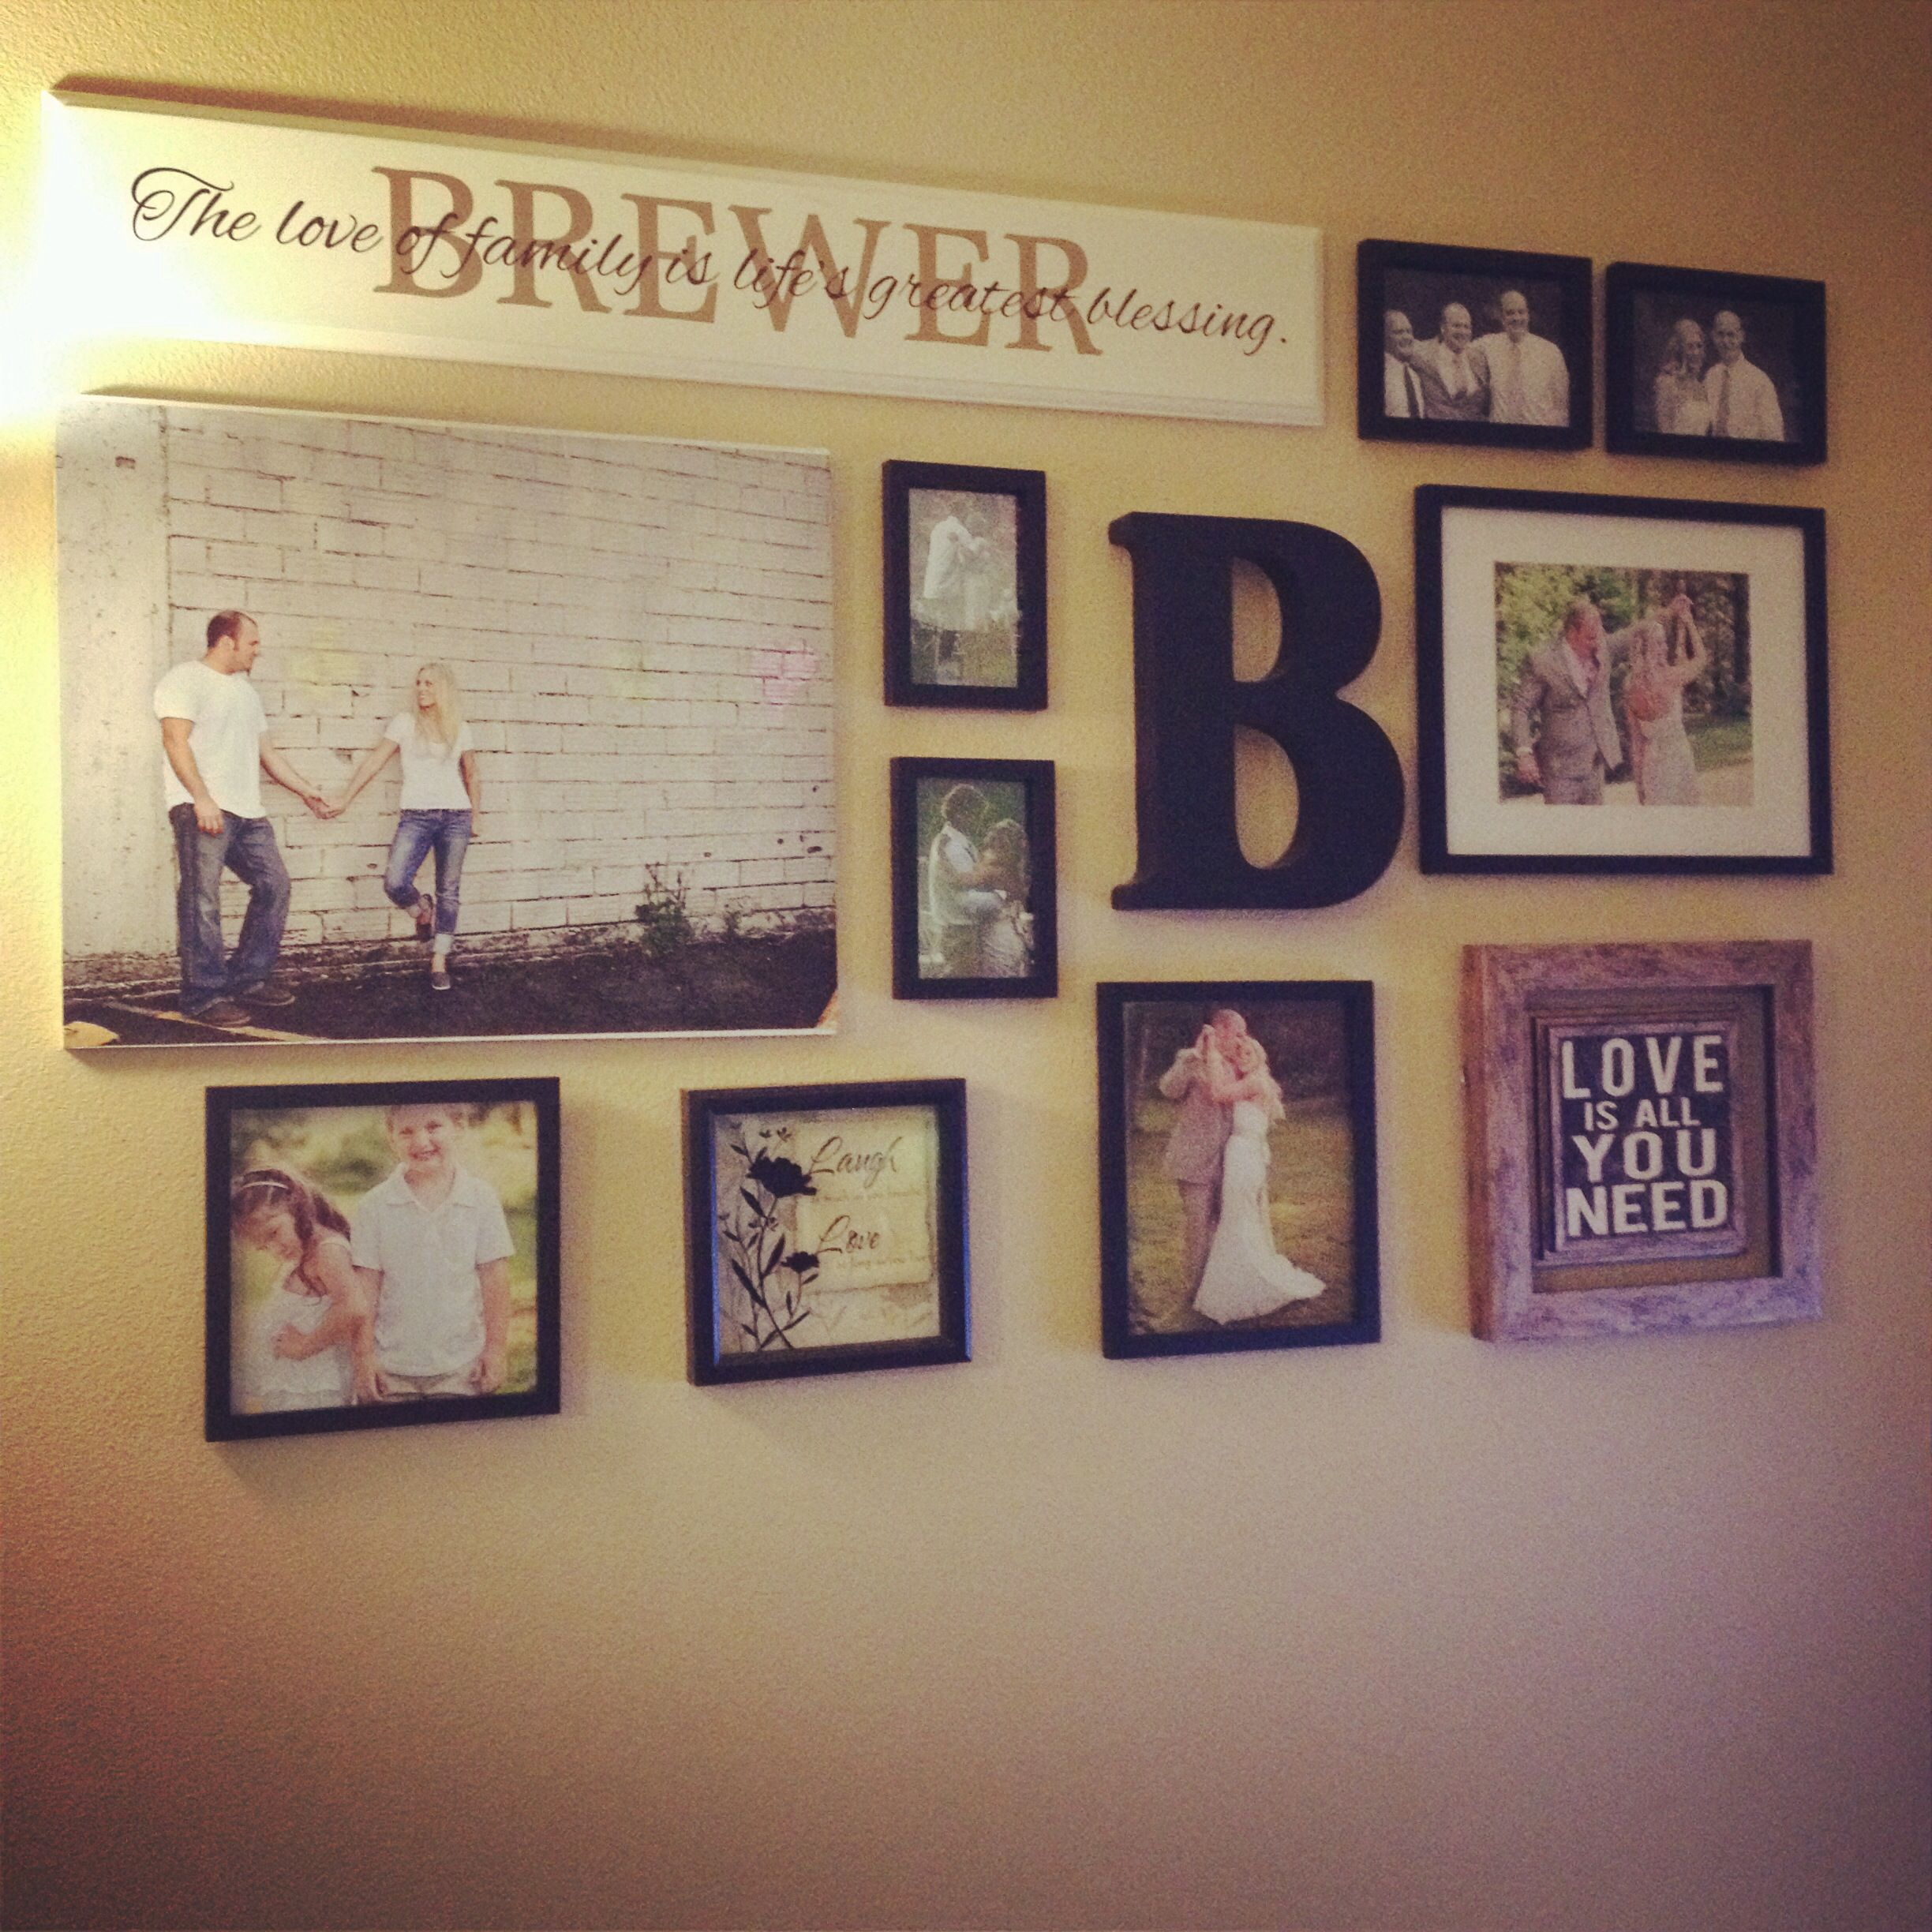 Pictures On The Wall The Brewers Living Room Ideas Photo Wall Collage